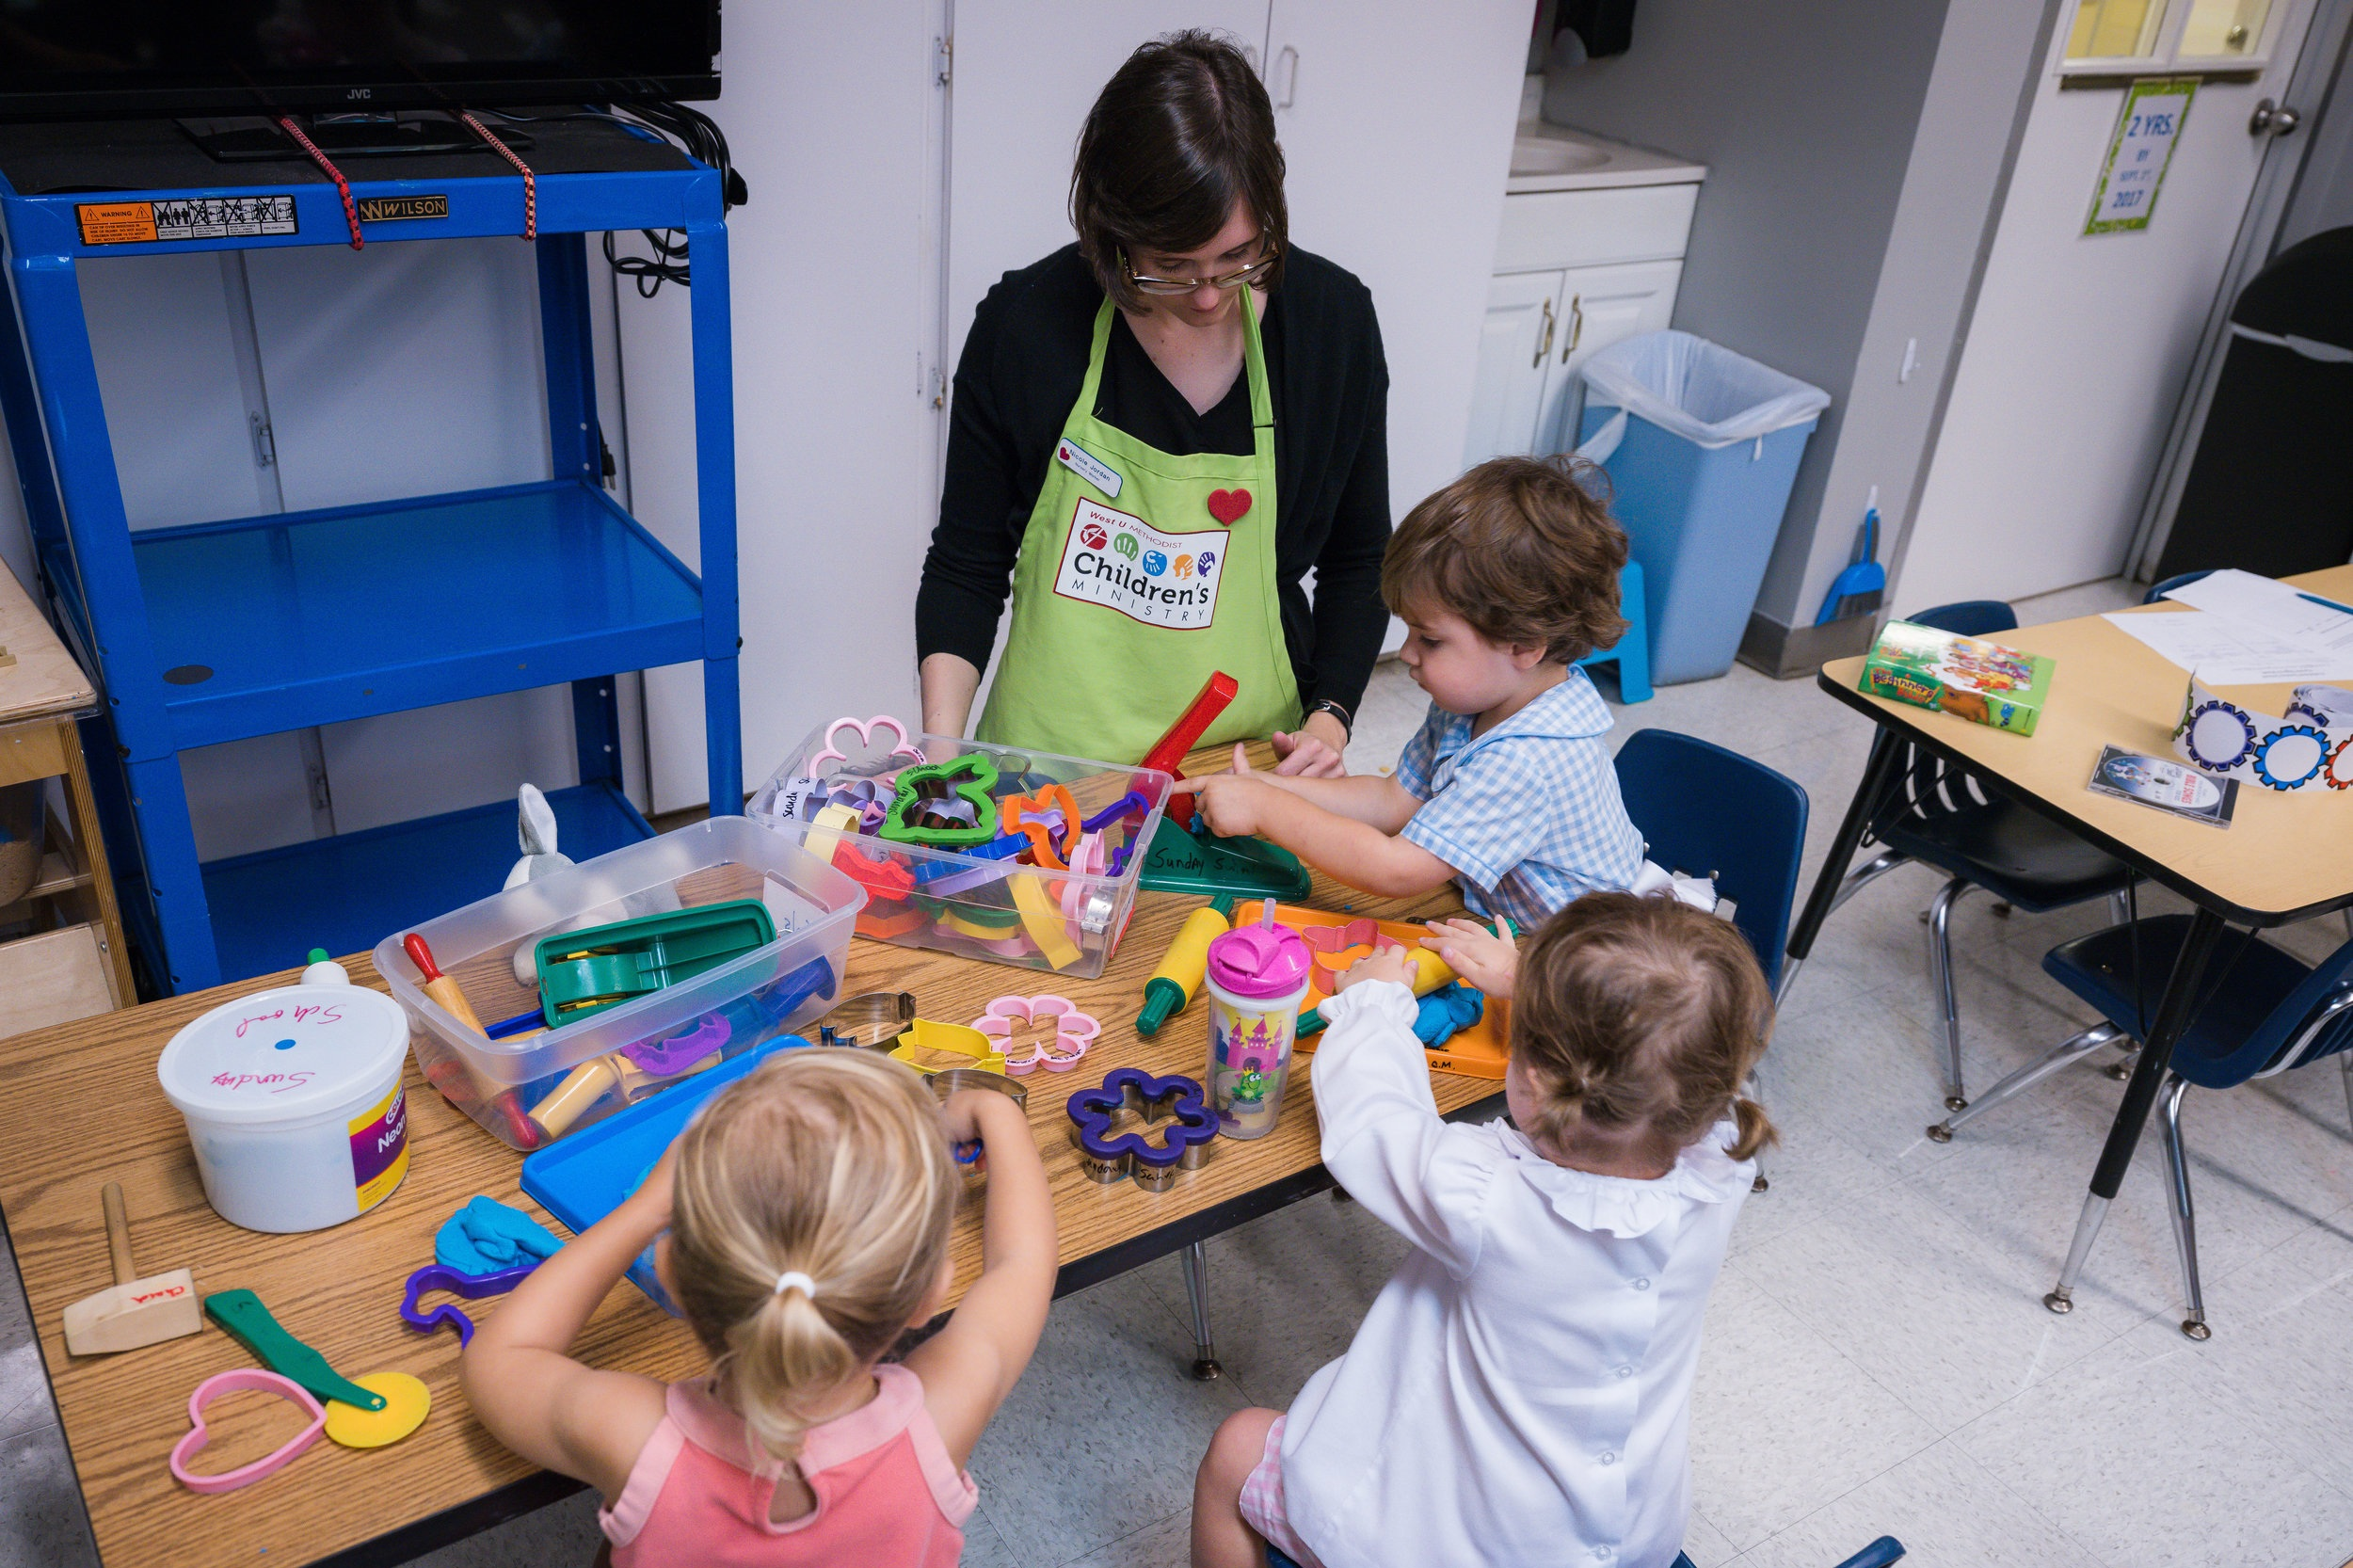 Preschool Sunday School - Bible lessons and fun activities are led by a talented group of volunteers. Young children learn to love God and the church and begin to understand how they can serve in God's name.